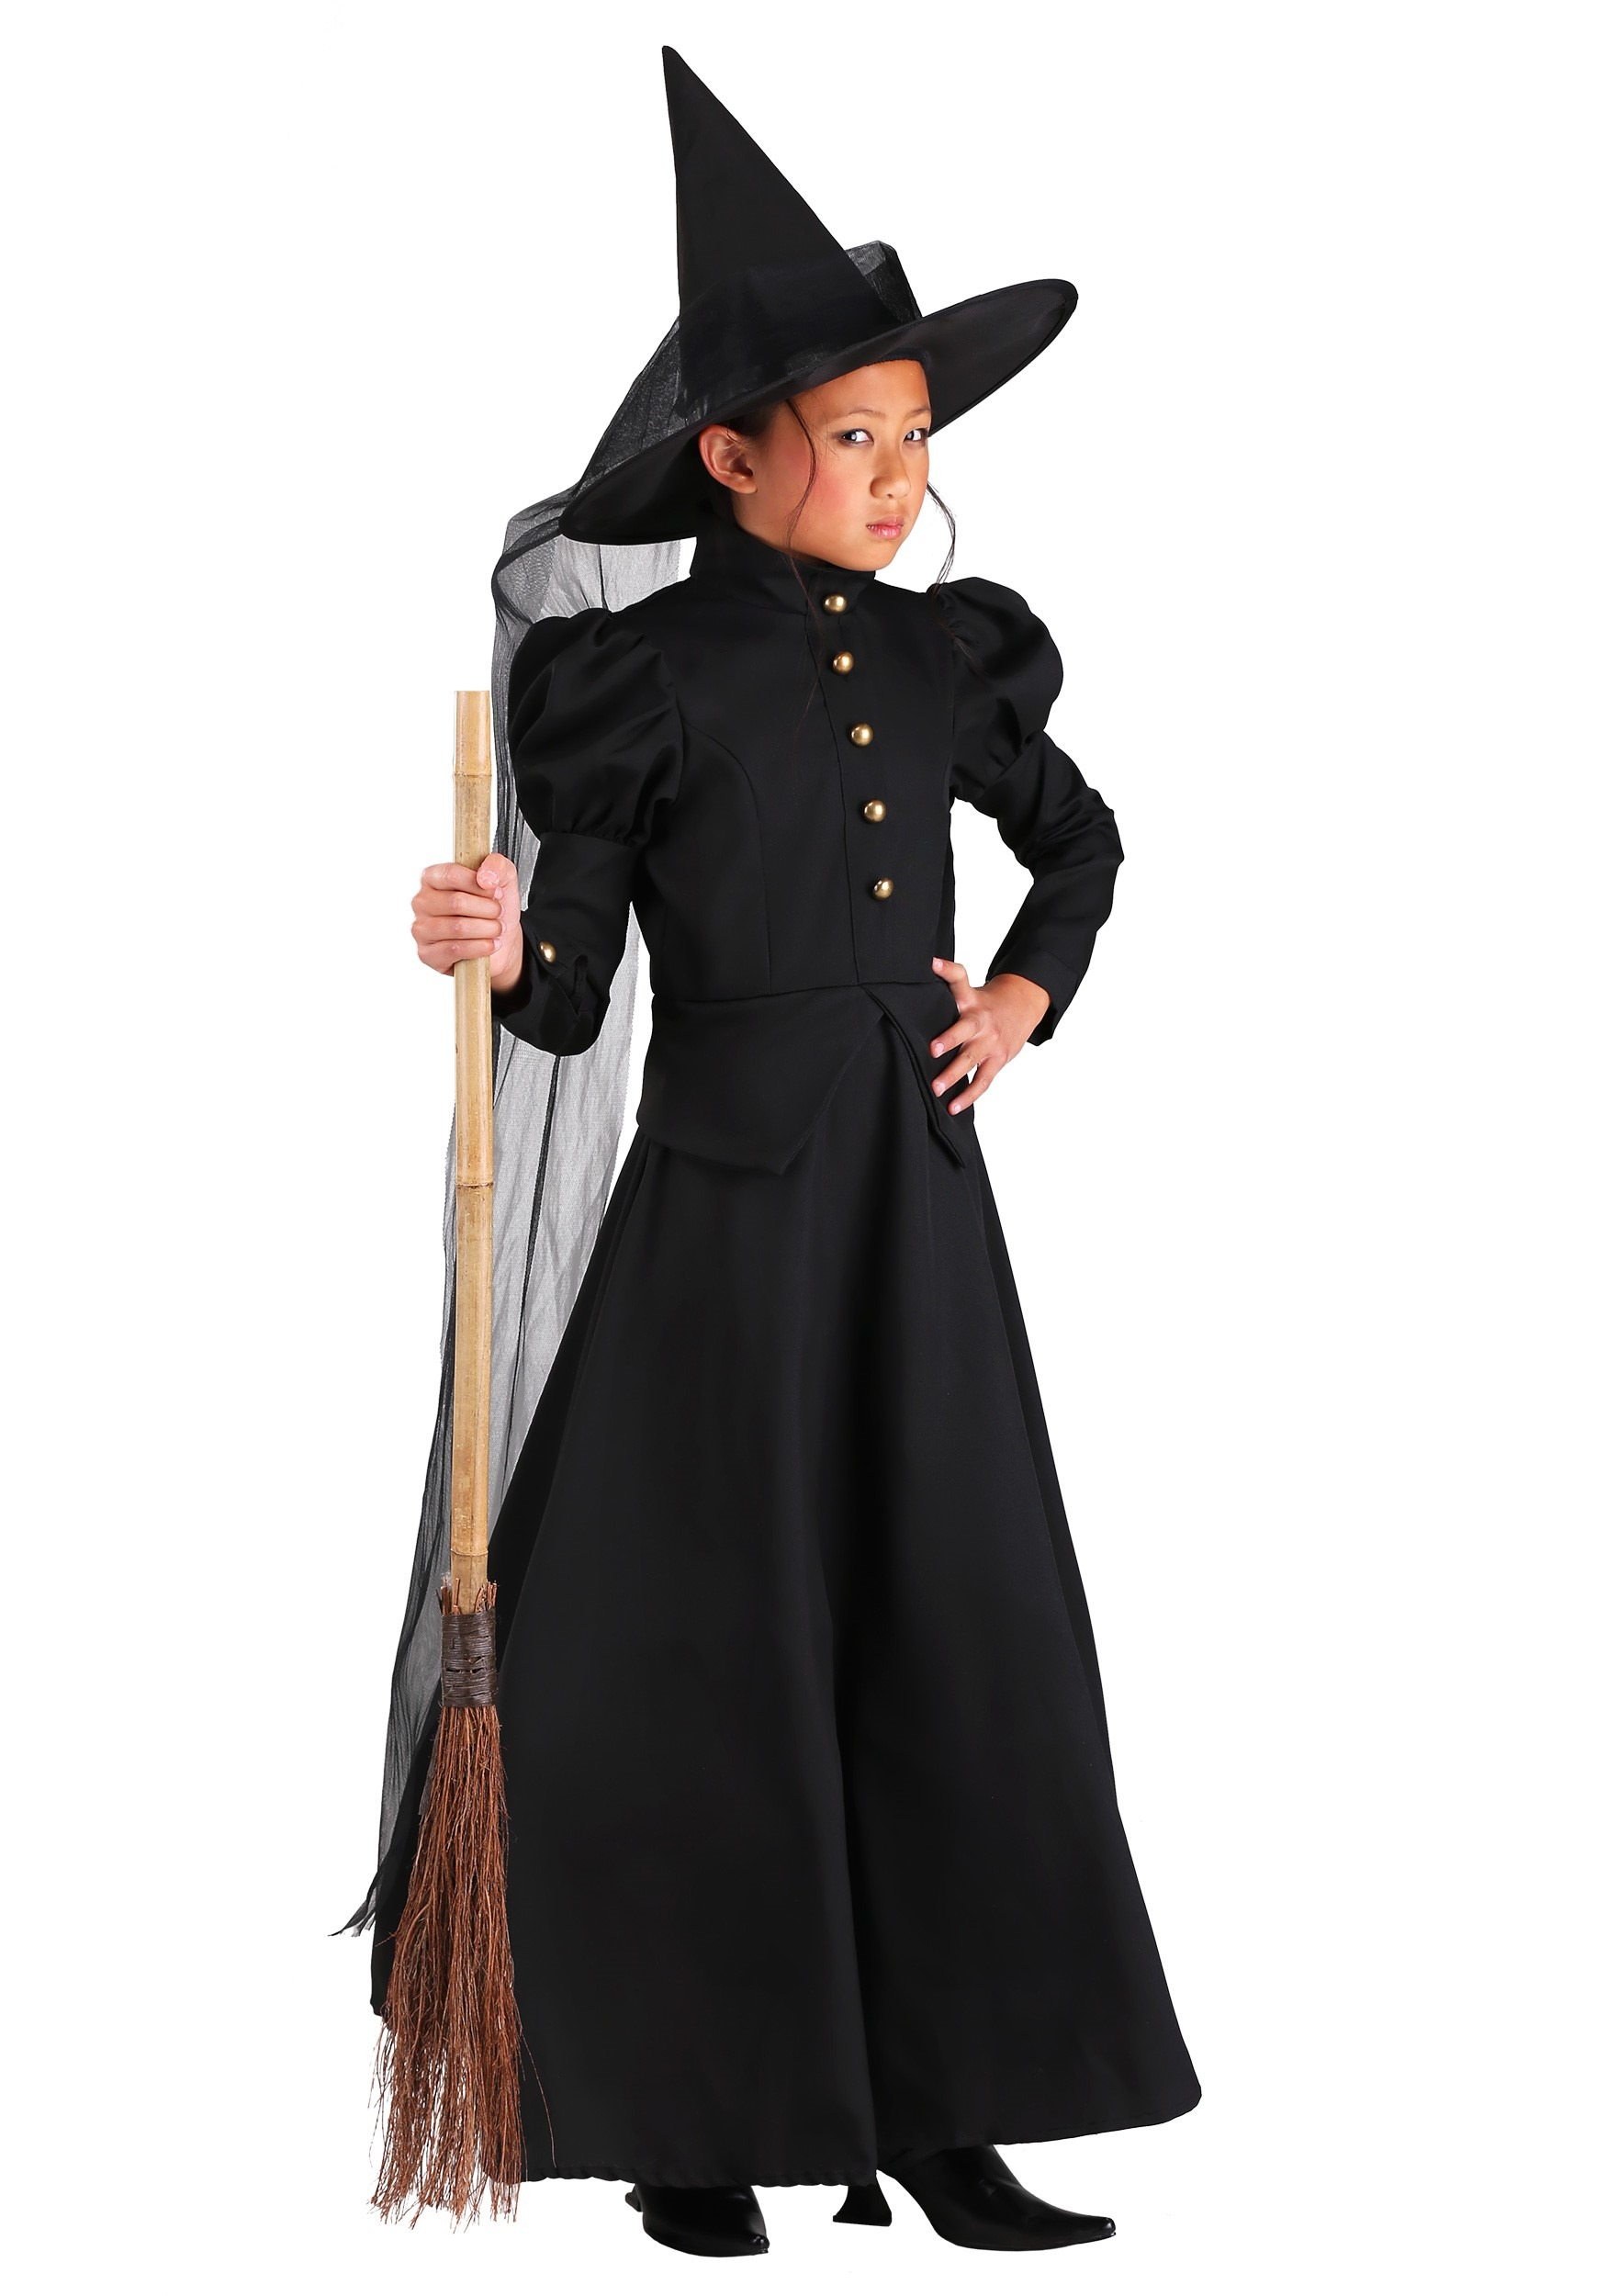 Witch Costumes - Adult, Child, Women's Halloween Witch Costume